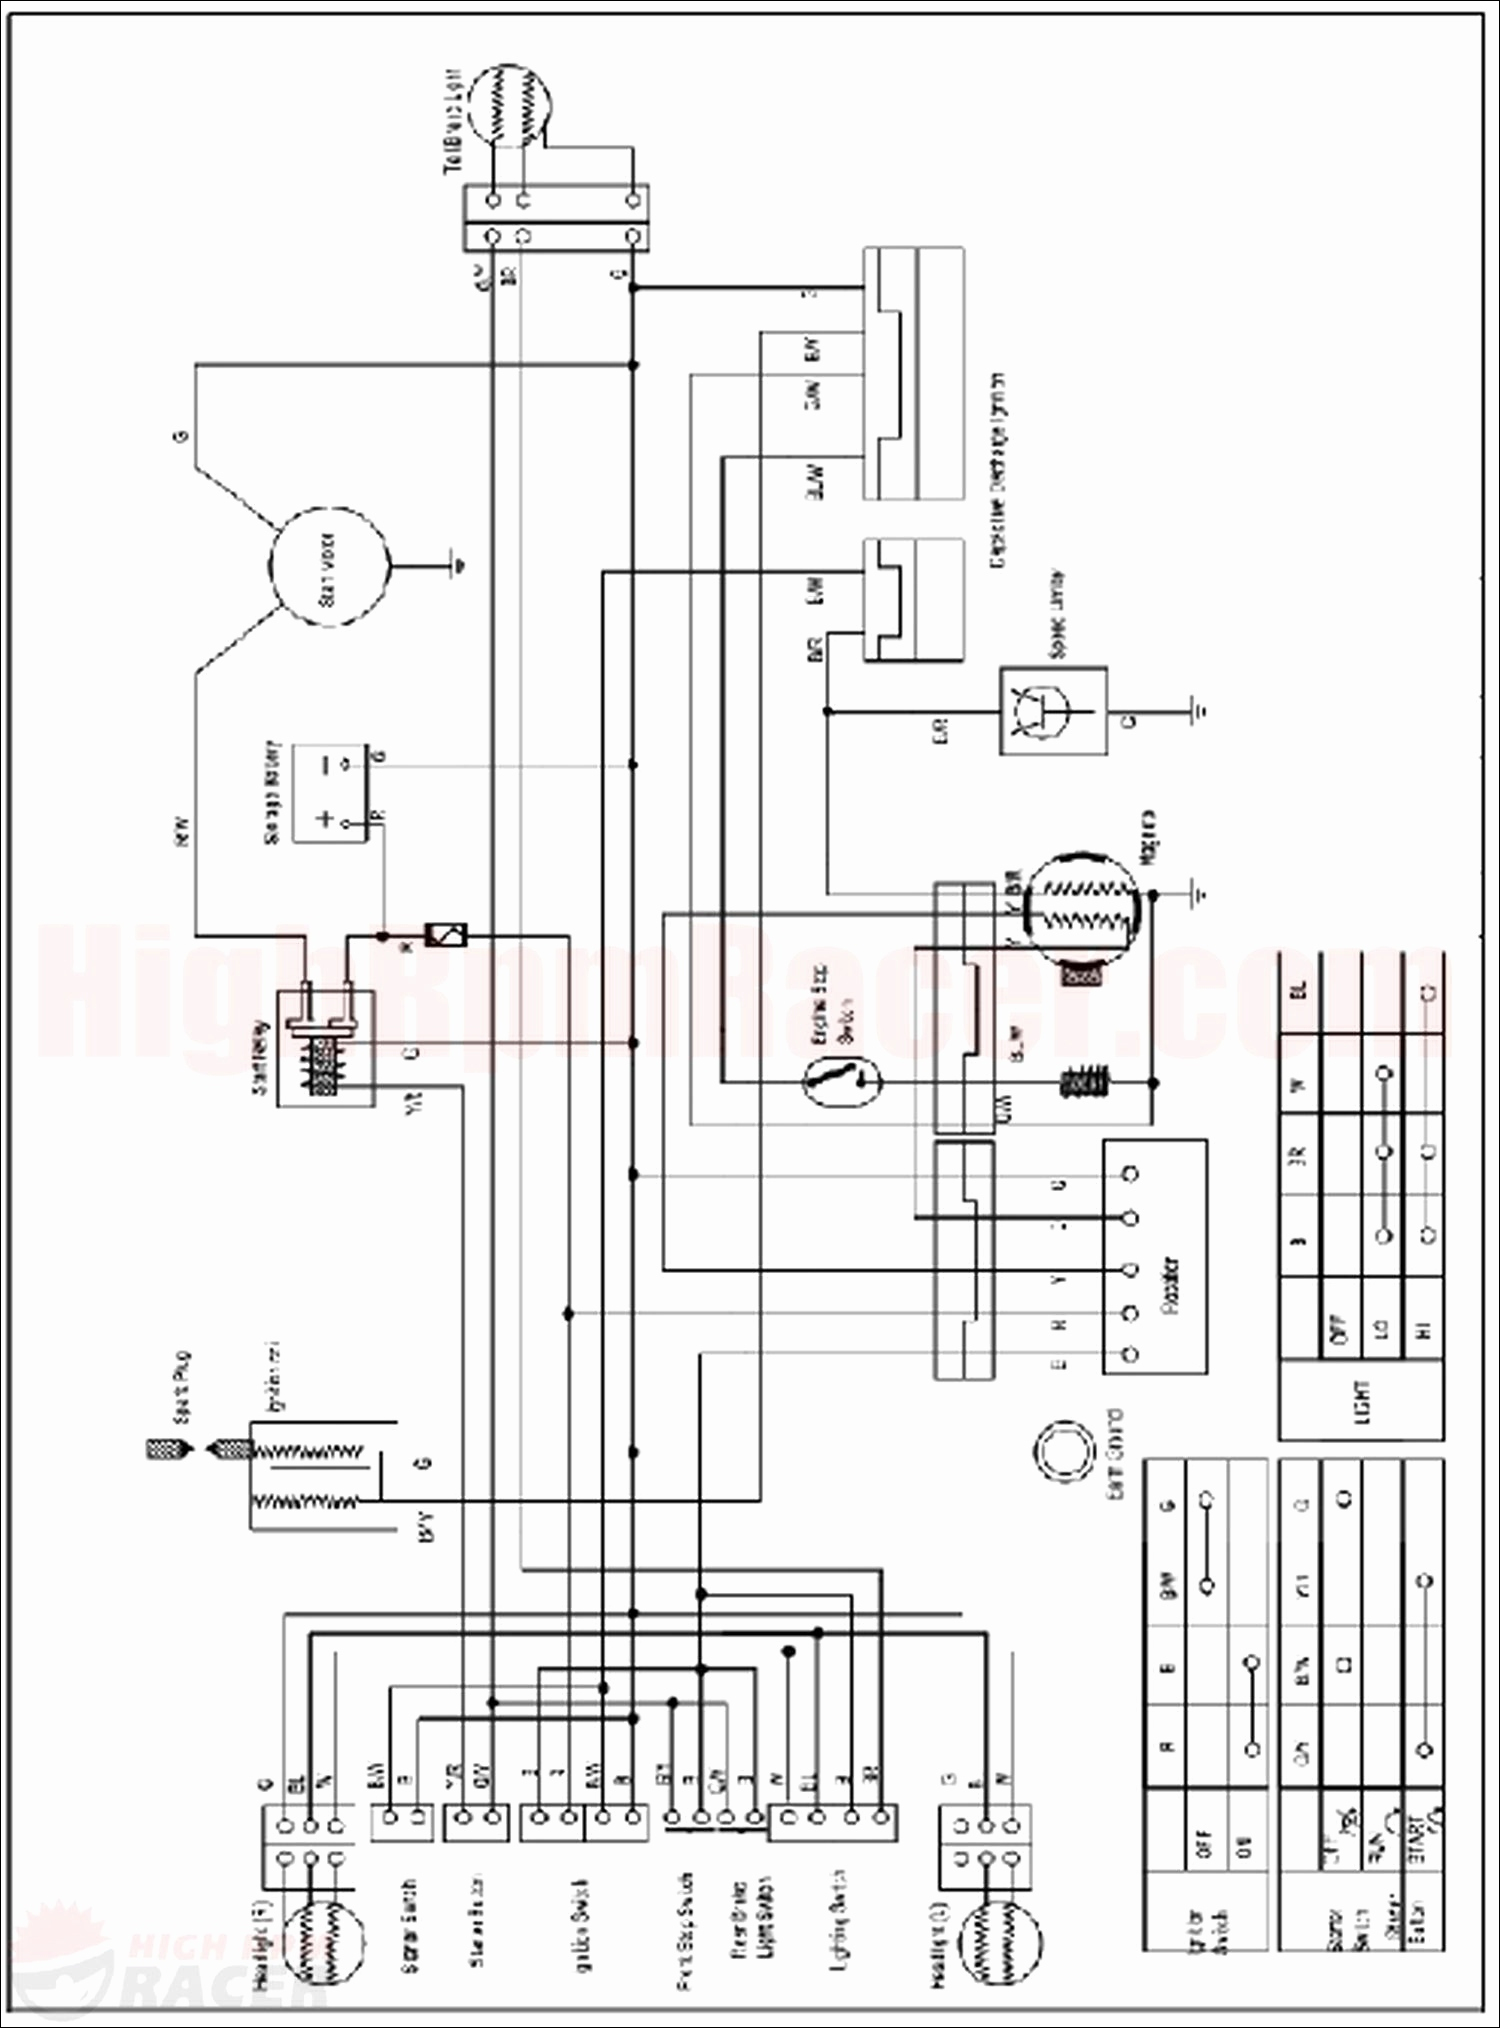 Wiring Diagram Suzuki Gsxr 2008 – Simple Wiring Diagram - Chinese 125Cc Atv Wiring Diagram